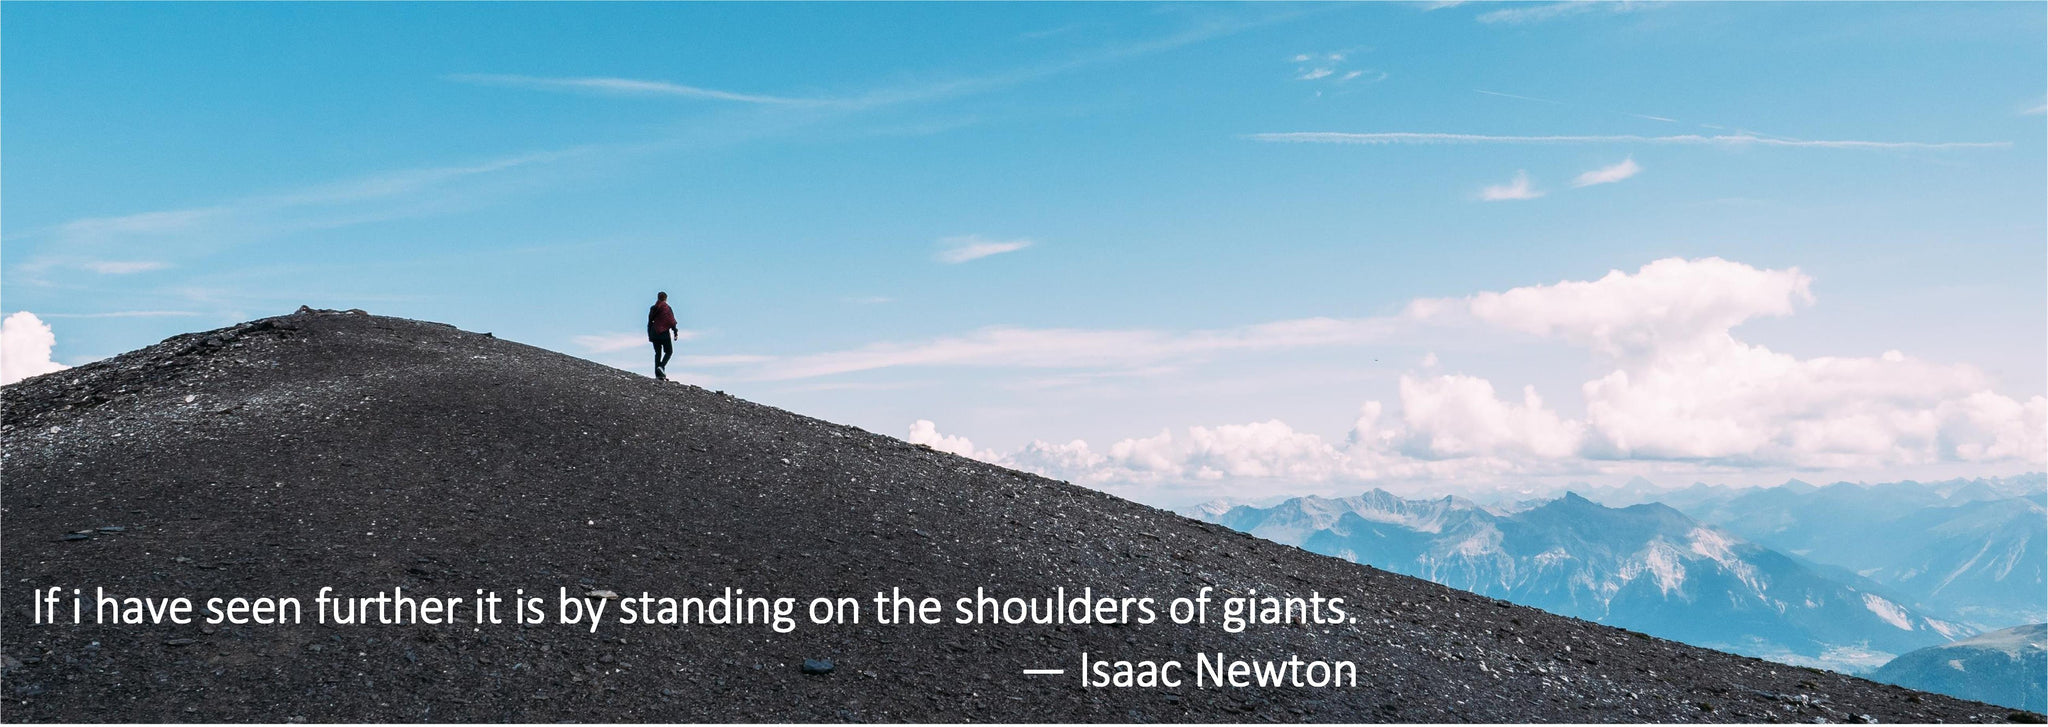 On the shoulder of giants